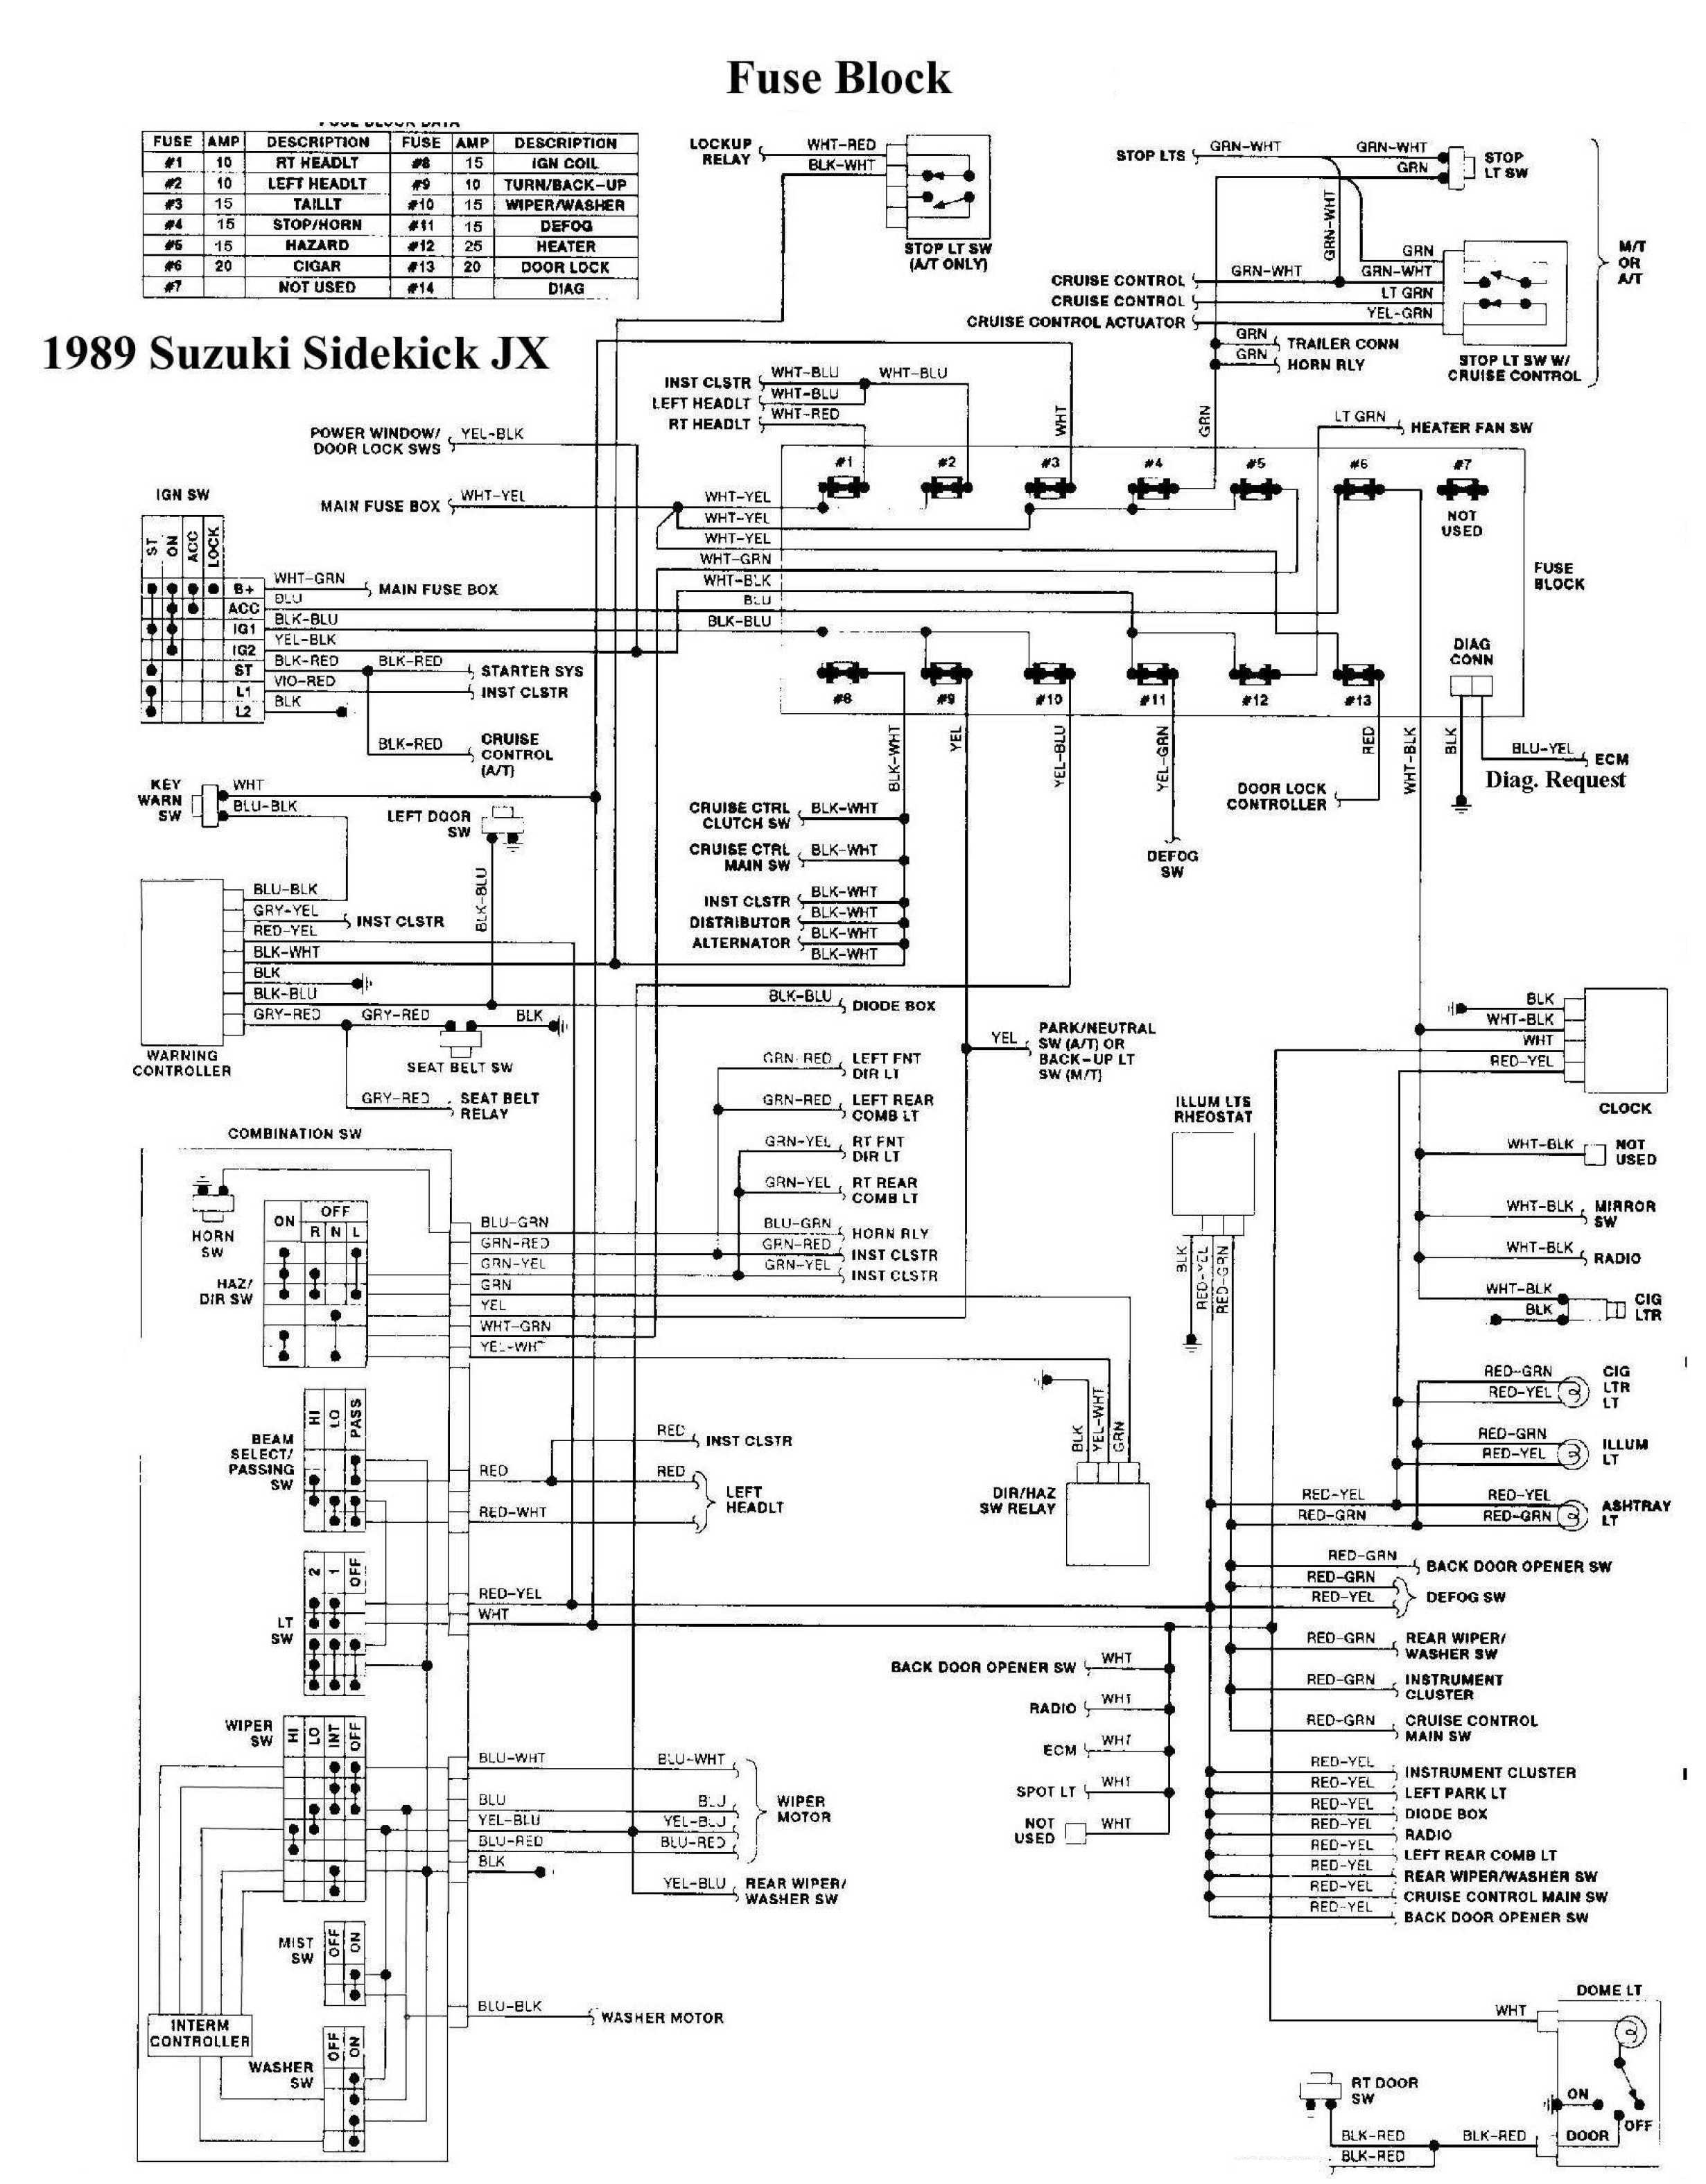 suzuki door schematic wiring diagrams best suzuki door schematic wiring diagram data suzuki motorcycle schematics suzuki door schematic